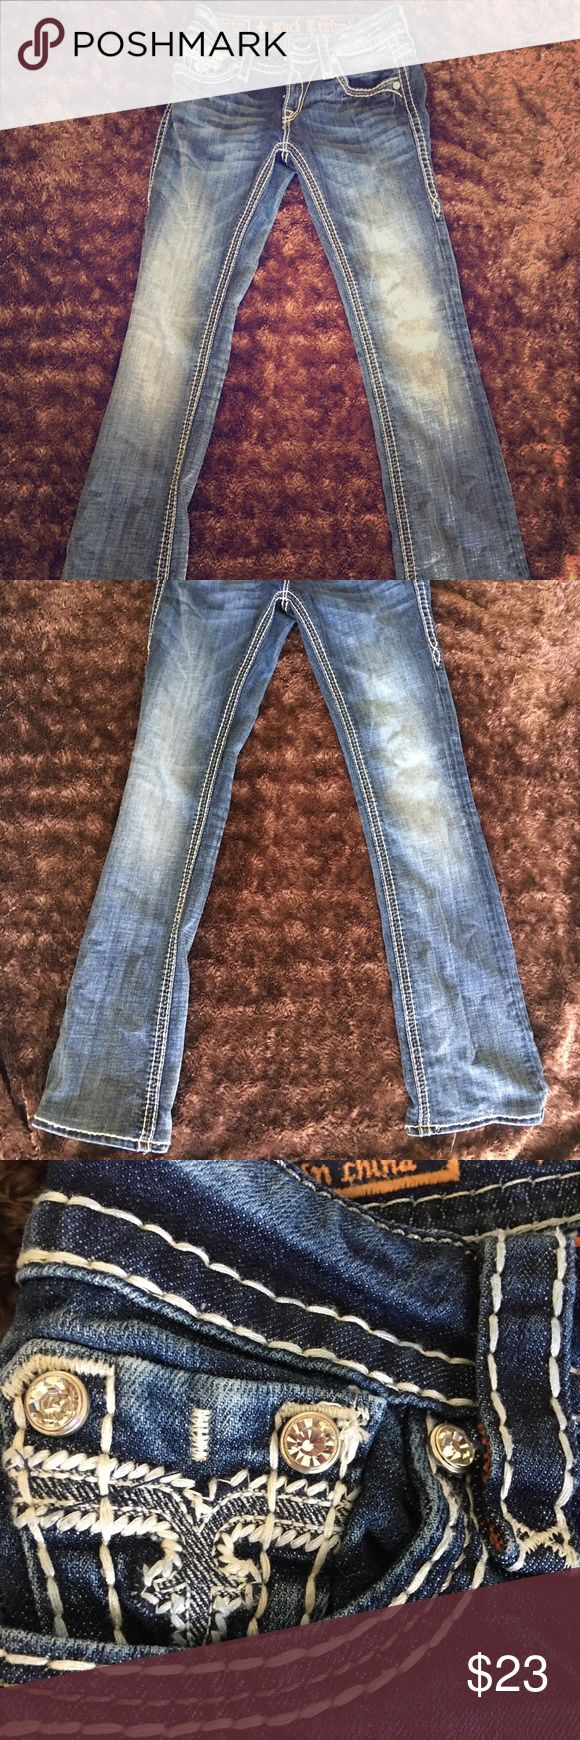 "Rock Revival Jeans- Simons Slim Boot Perfect jeans for date night or hanging with friends. These jeans were hemmed by the seamstress at Buckle. ***Jeans will fit perfectly for ladies 5'3"" and shorter*** Rock Revival Jeans Boot Cut"